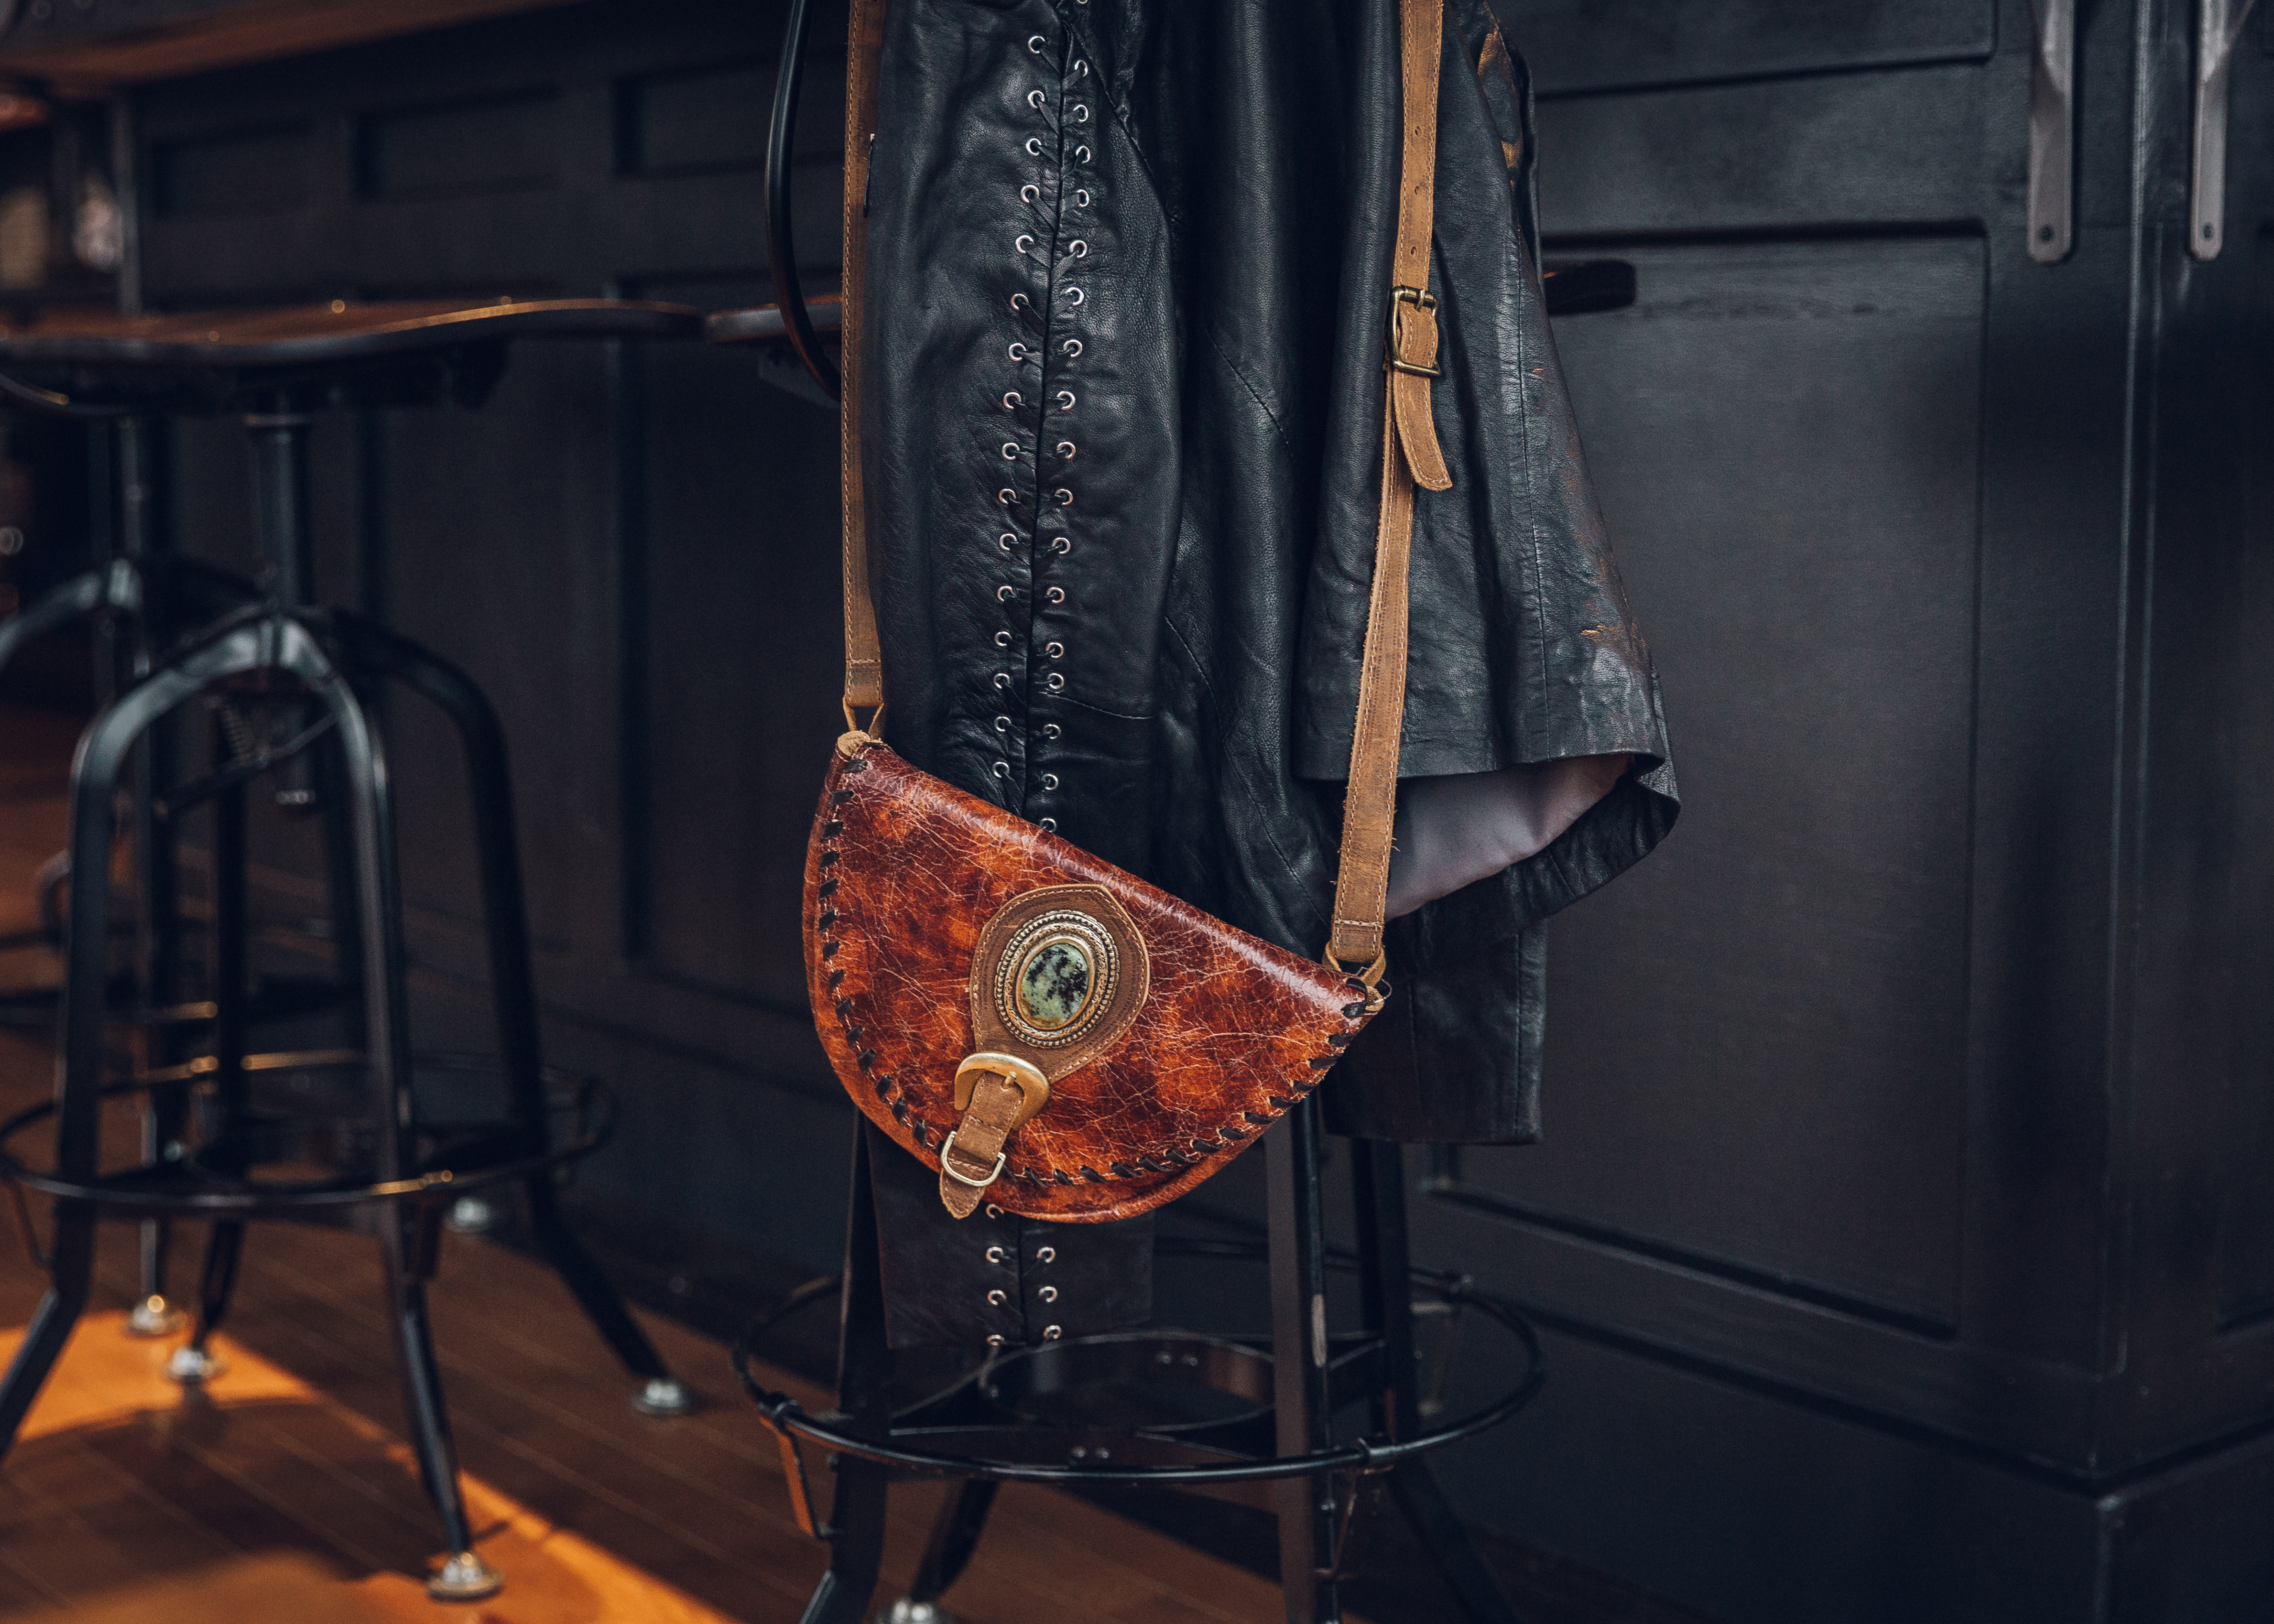 Real leather jackets and bags from Buckle